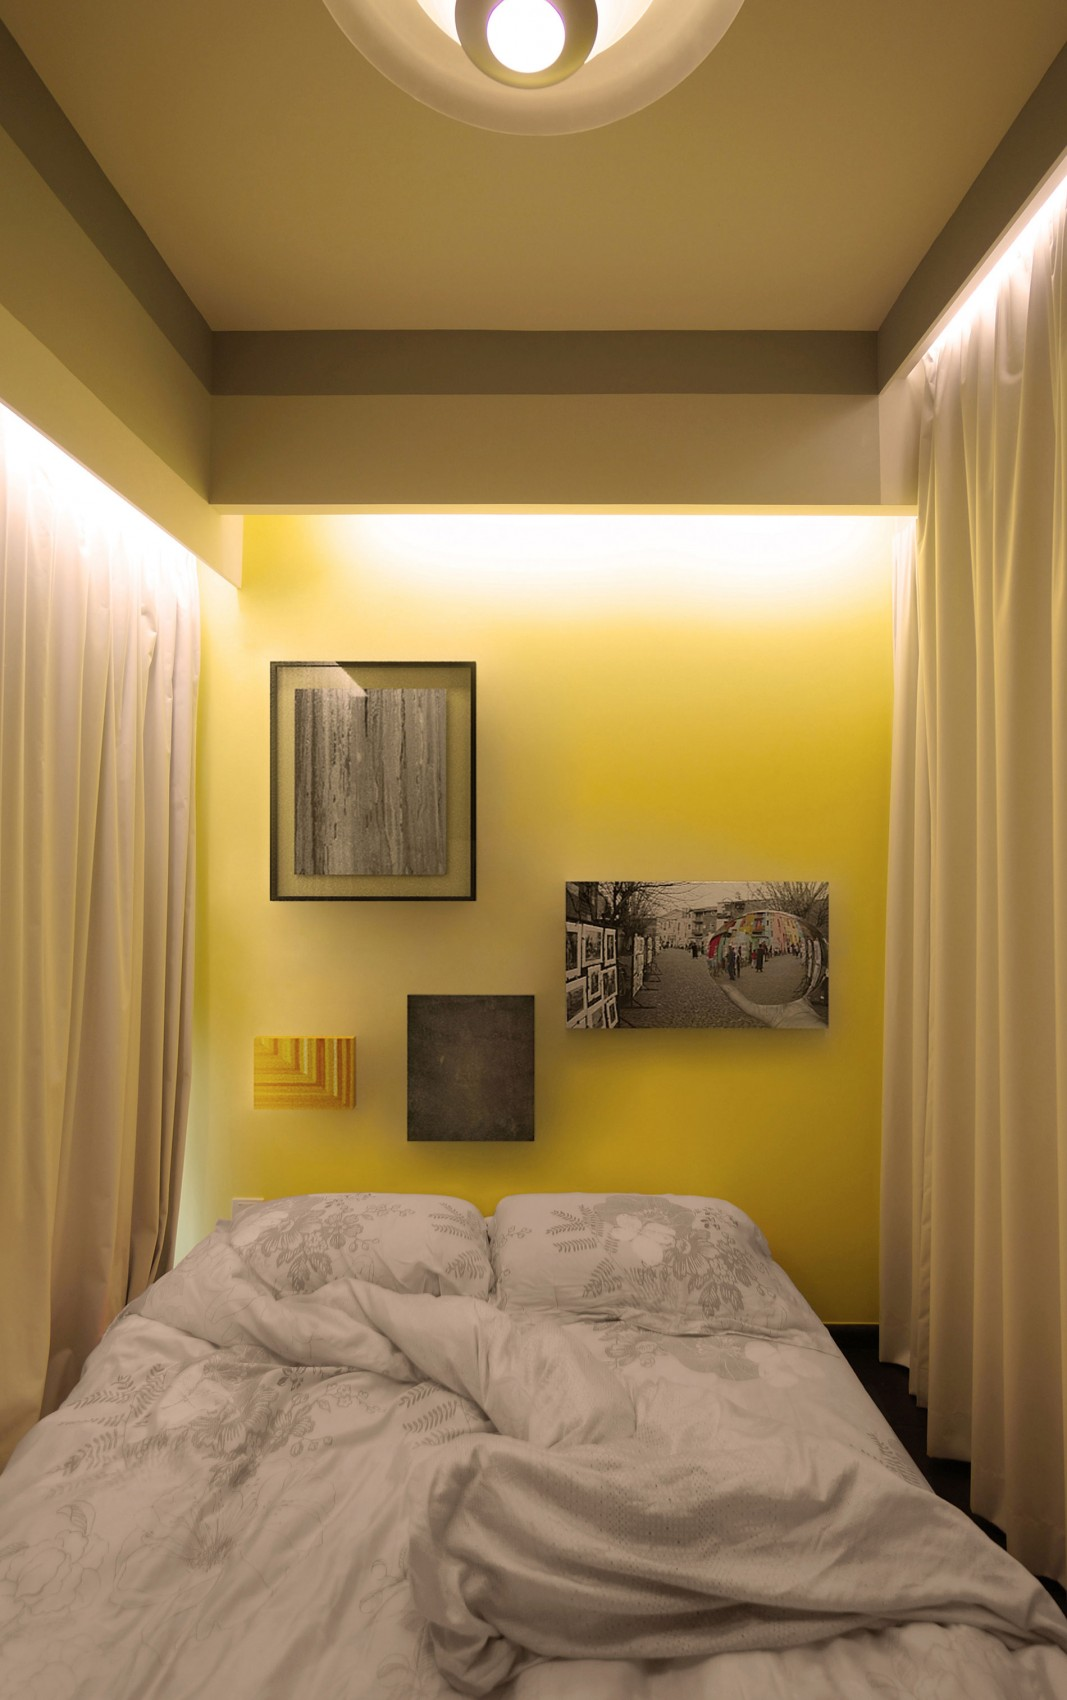 Tiny-apartment-Singapore-bedroom3-at-night